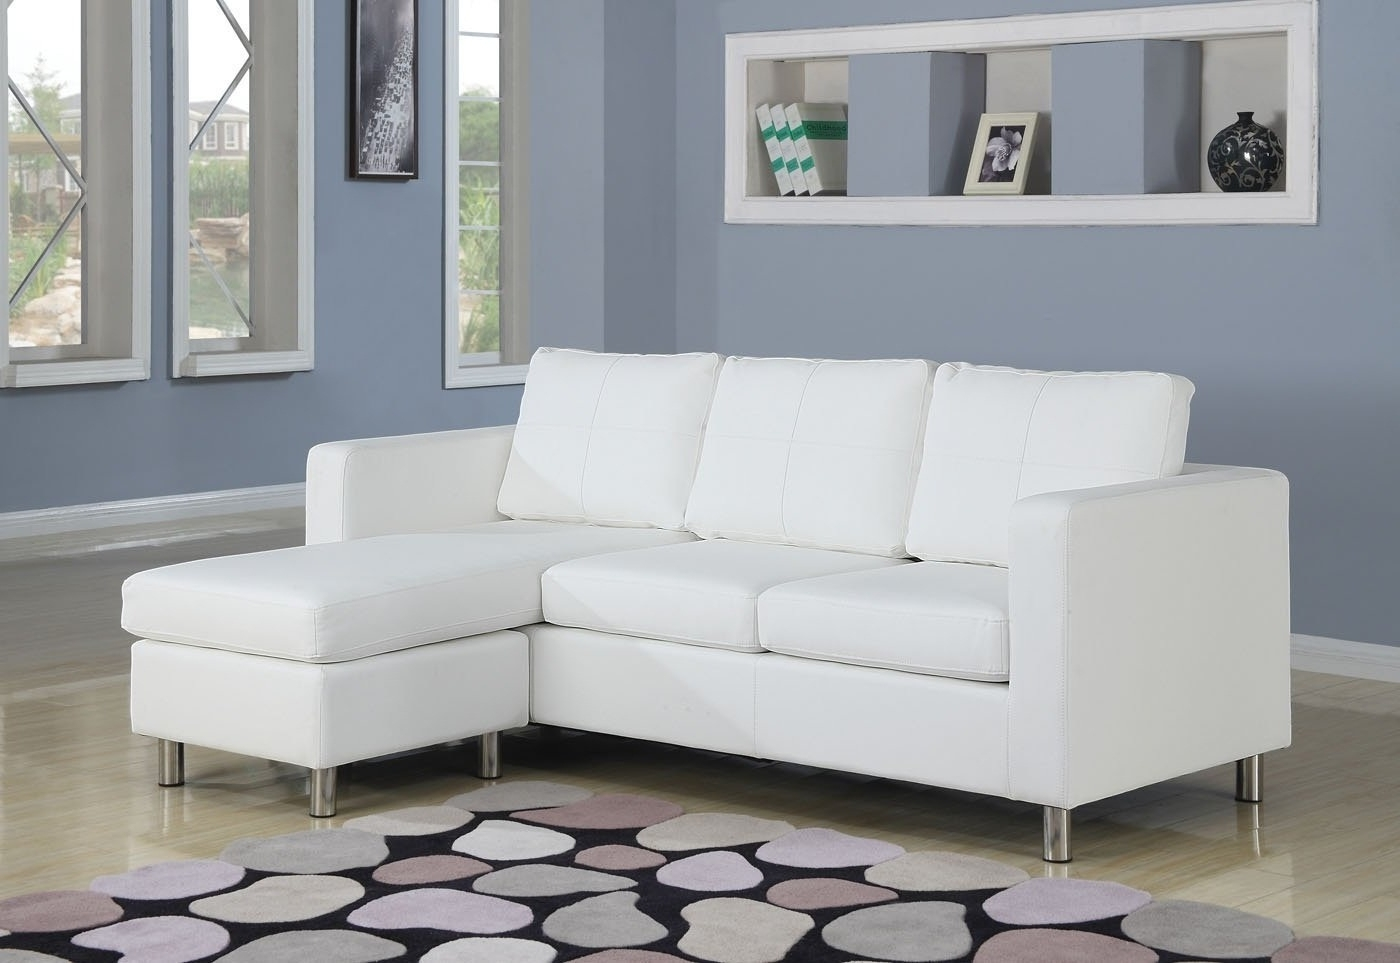 Mini Sectional Sofas For Recent Sofa : Small Reclining Sectional Sofa Small Double Chaise Sofa (View 10 of 20)